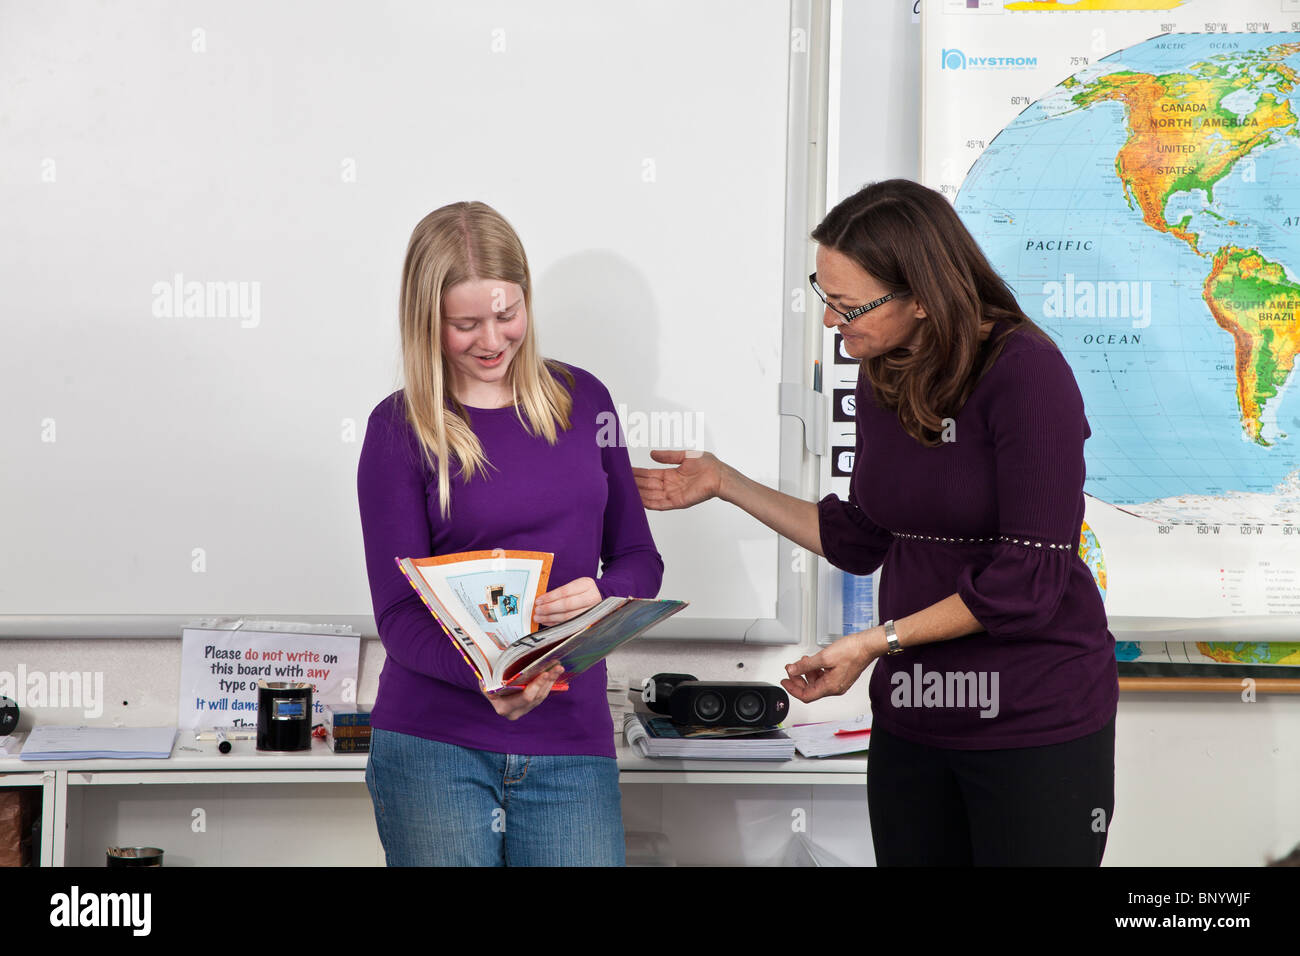 Student child children 11-13 years old speaking and reading with teacher in front of class female females person - Stock Image